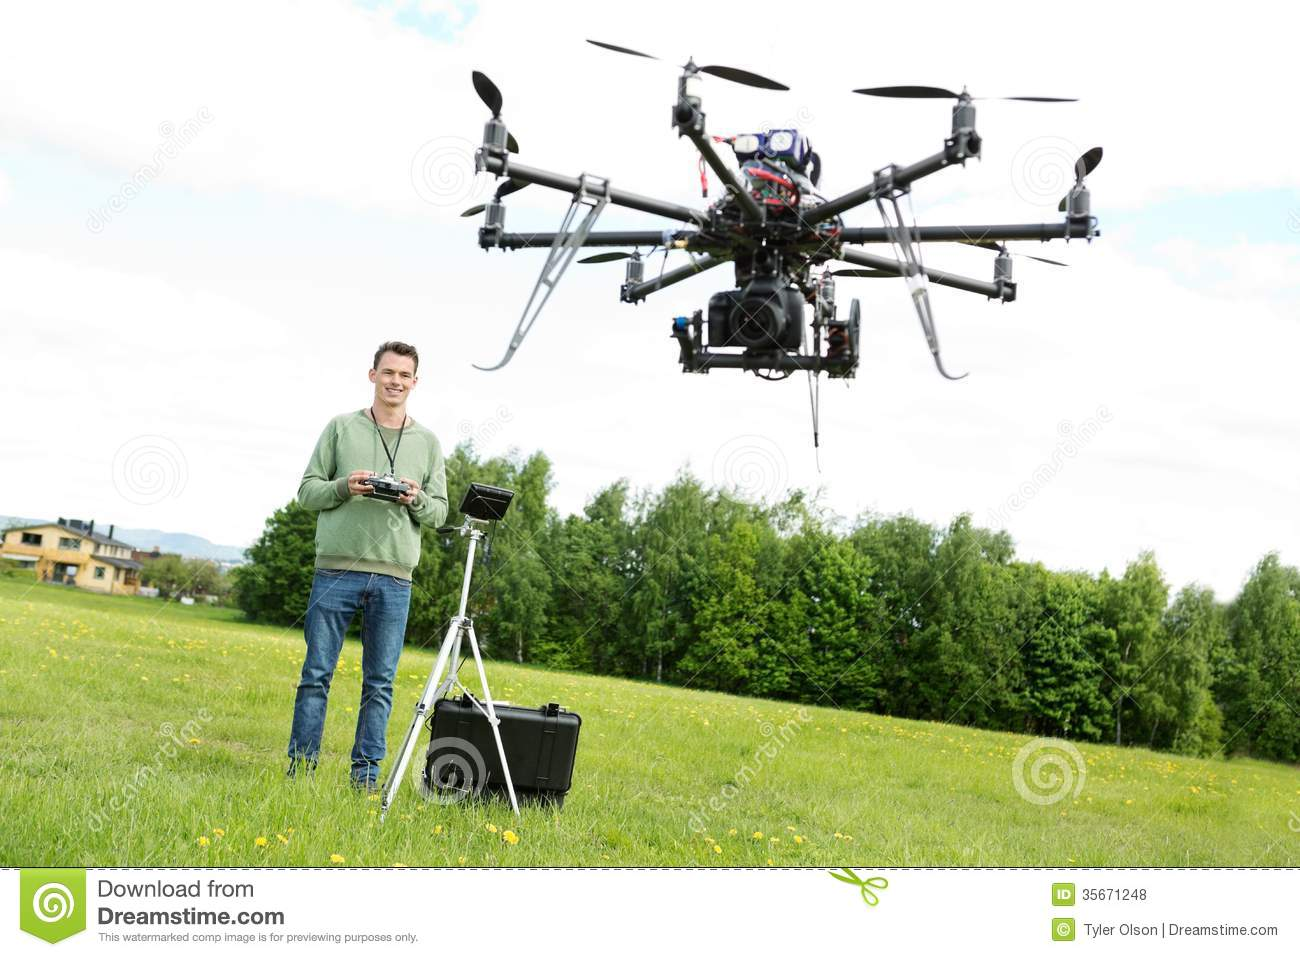 Technician Flying UAV Octocopter in Park